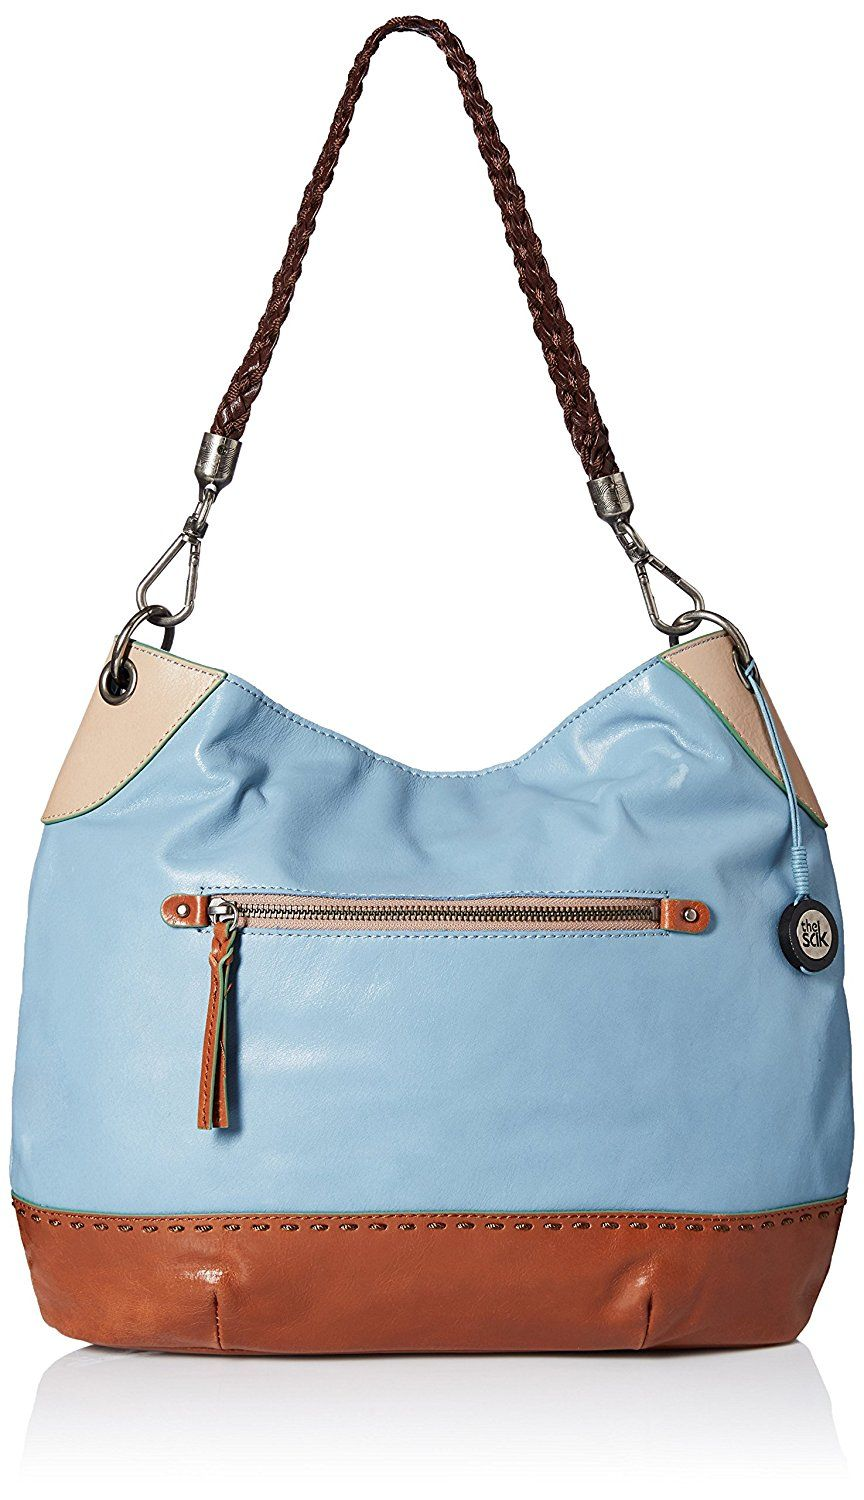 5fb3e645e67f New The Sak Indio Leather Hobo Bag Purse Satchel Handbag Pocketbook Harbour  Blue